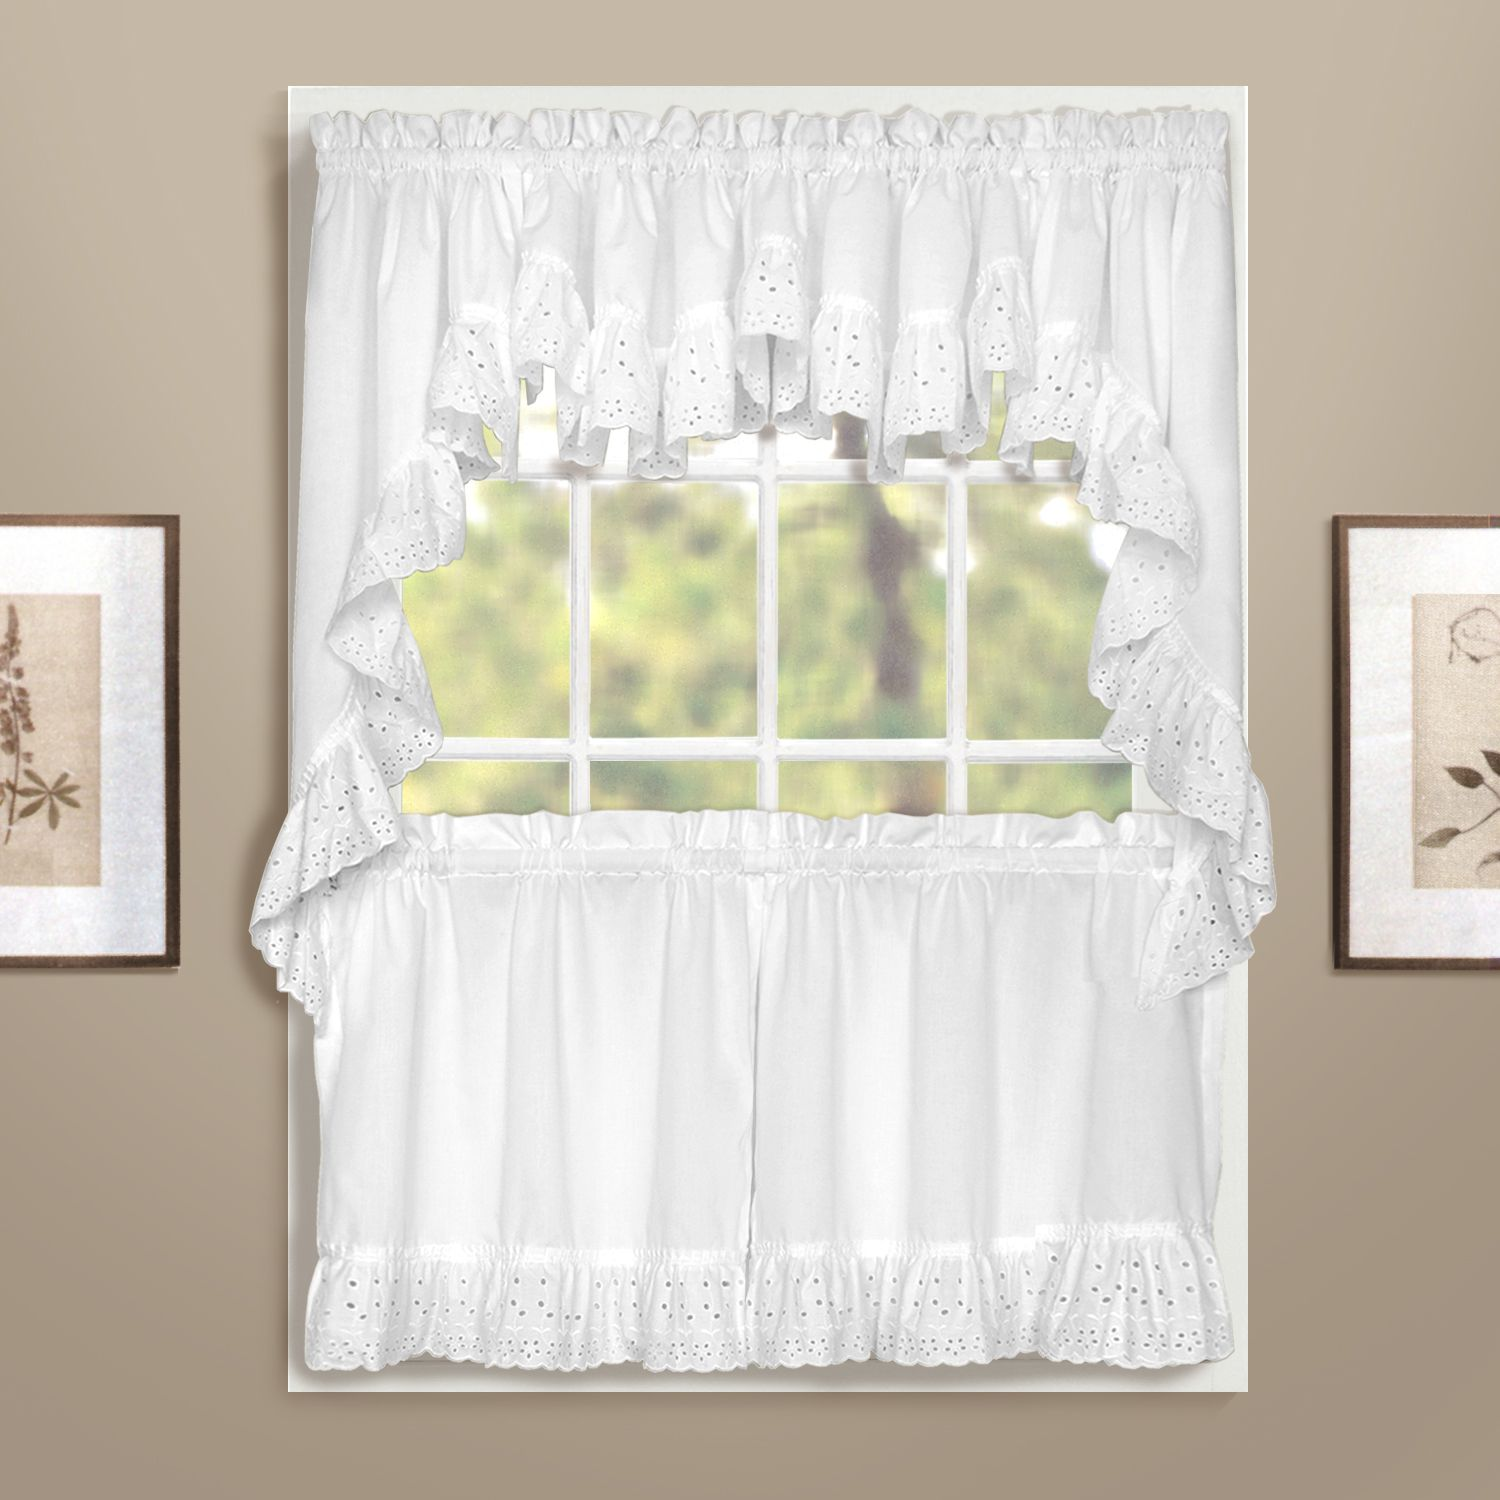 United Curtain Co. Vienna Eyelet Swag Tier Kitchen Window Curtains